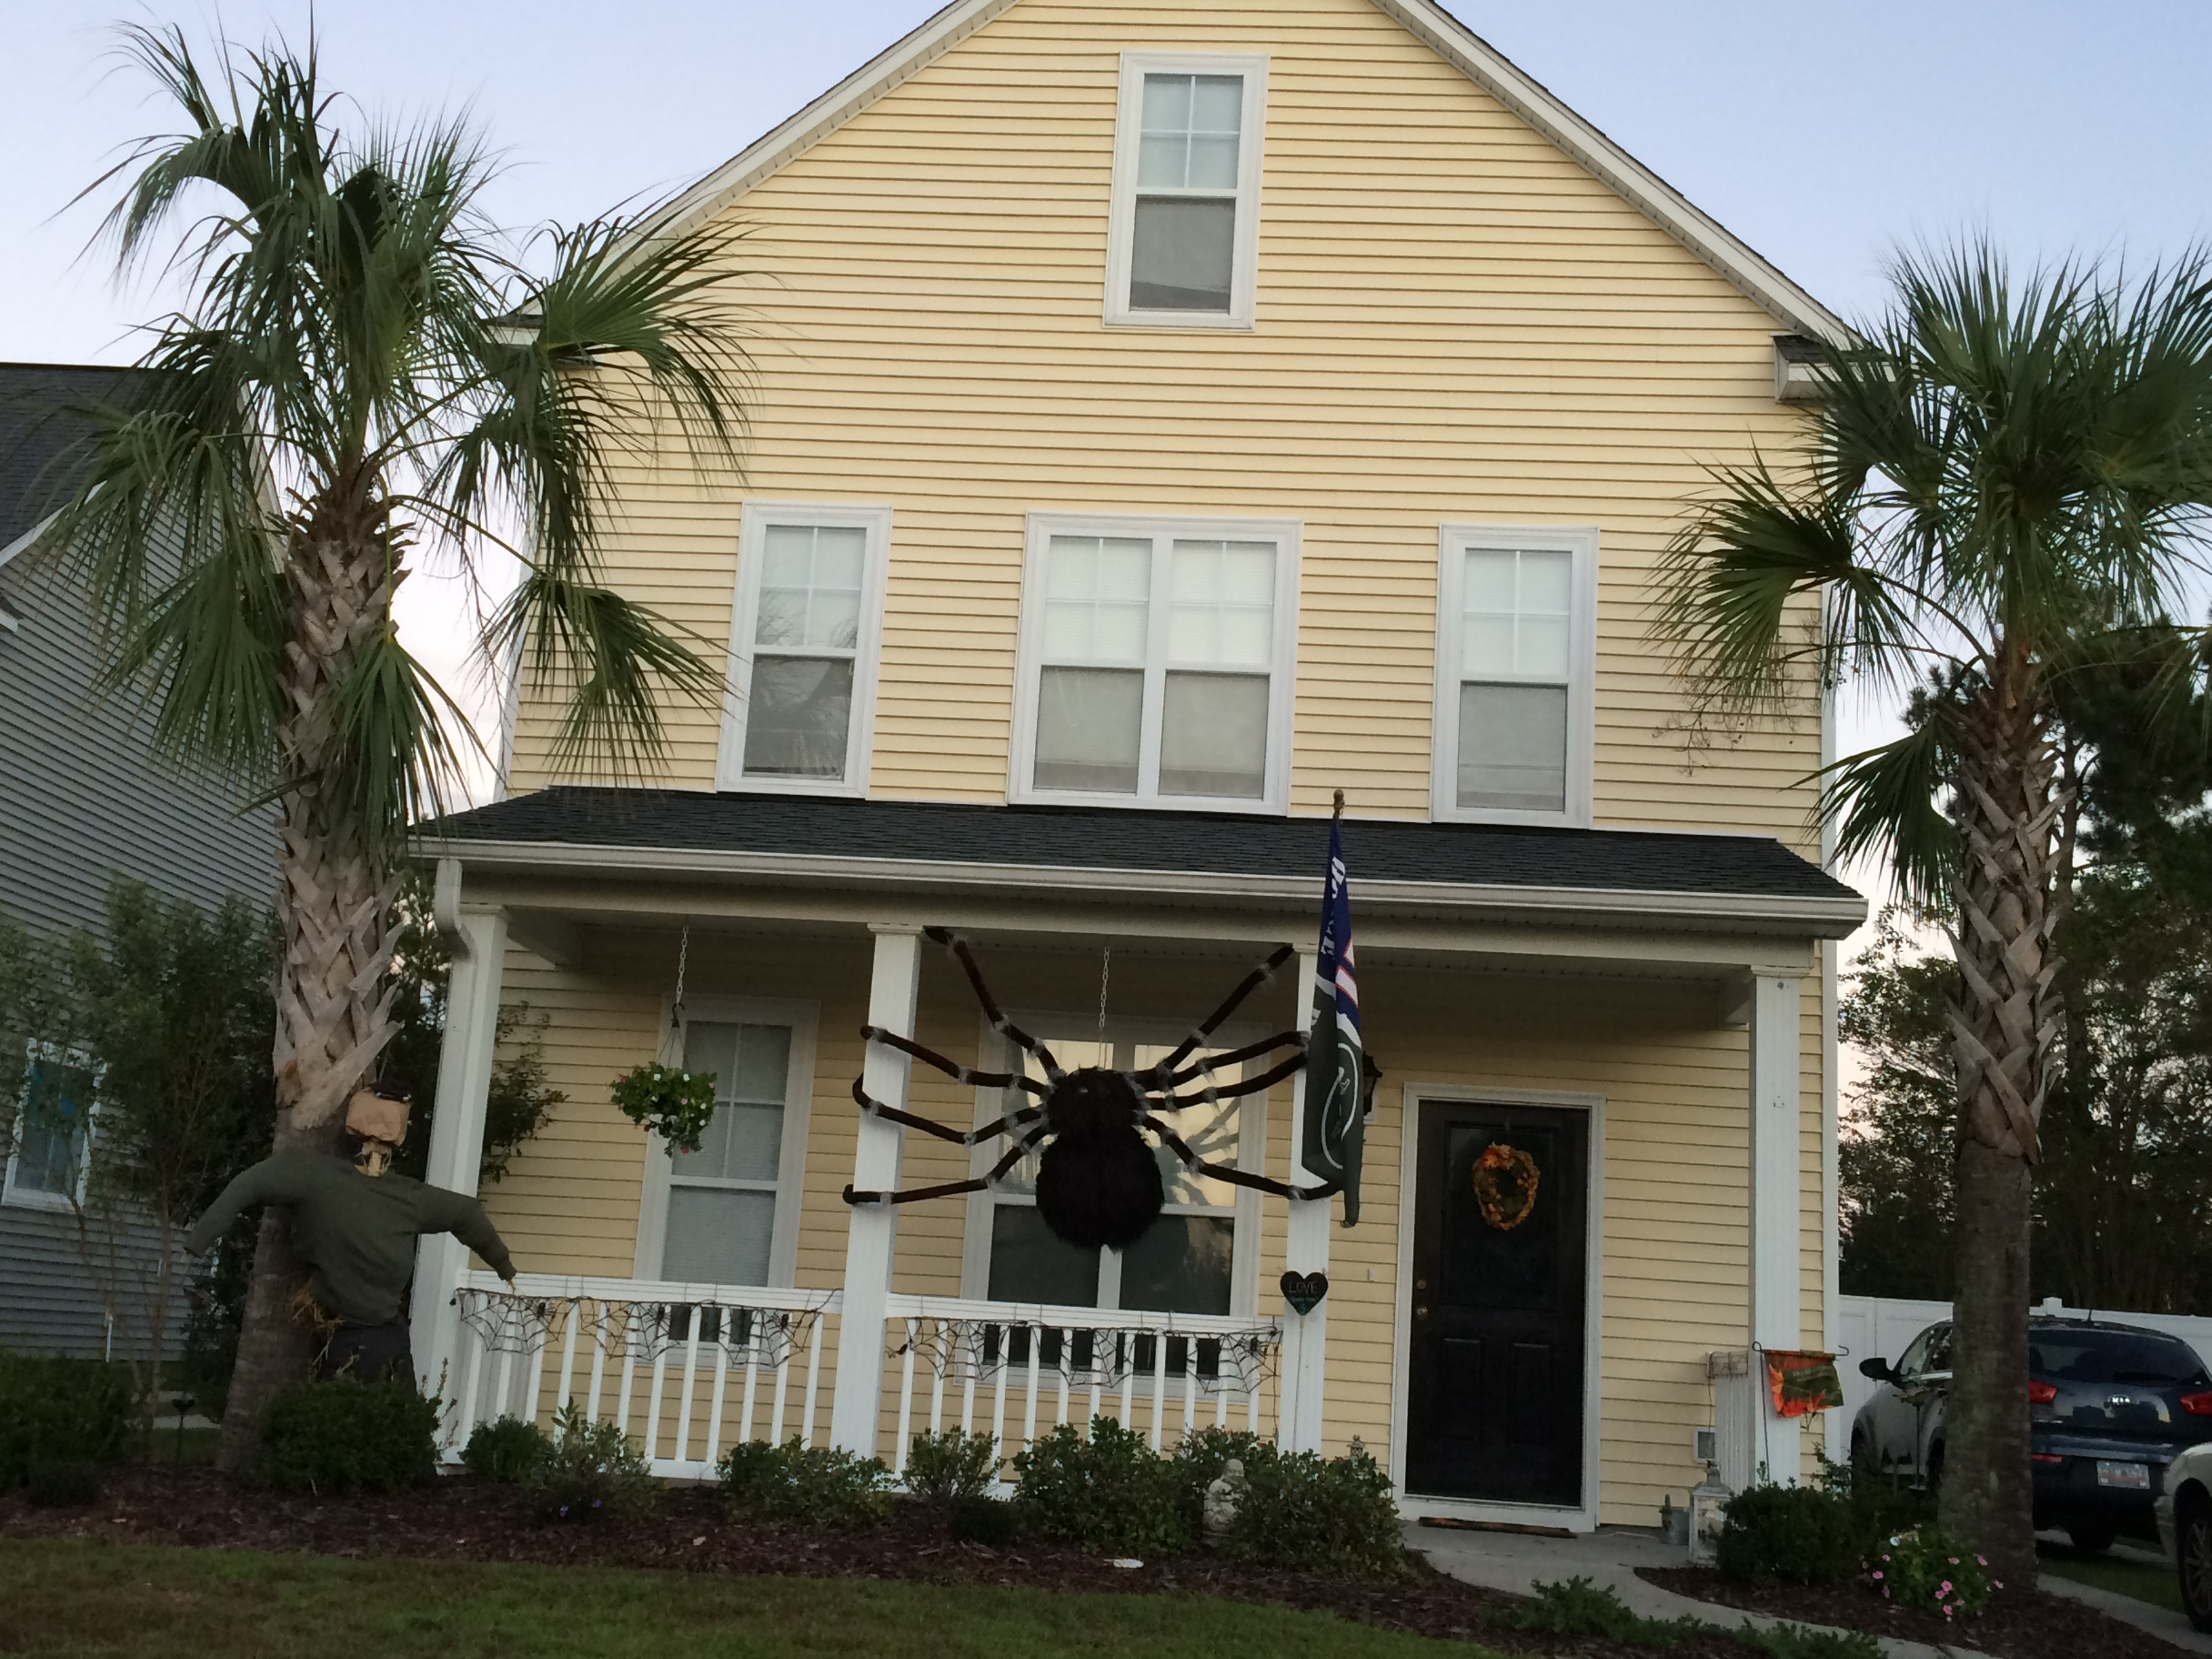 That is one big spider.